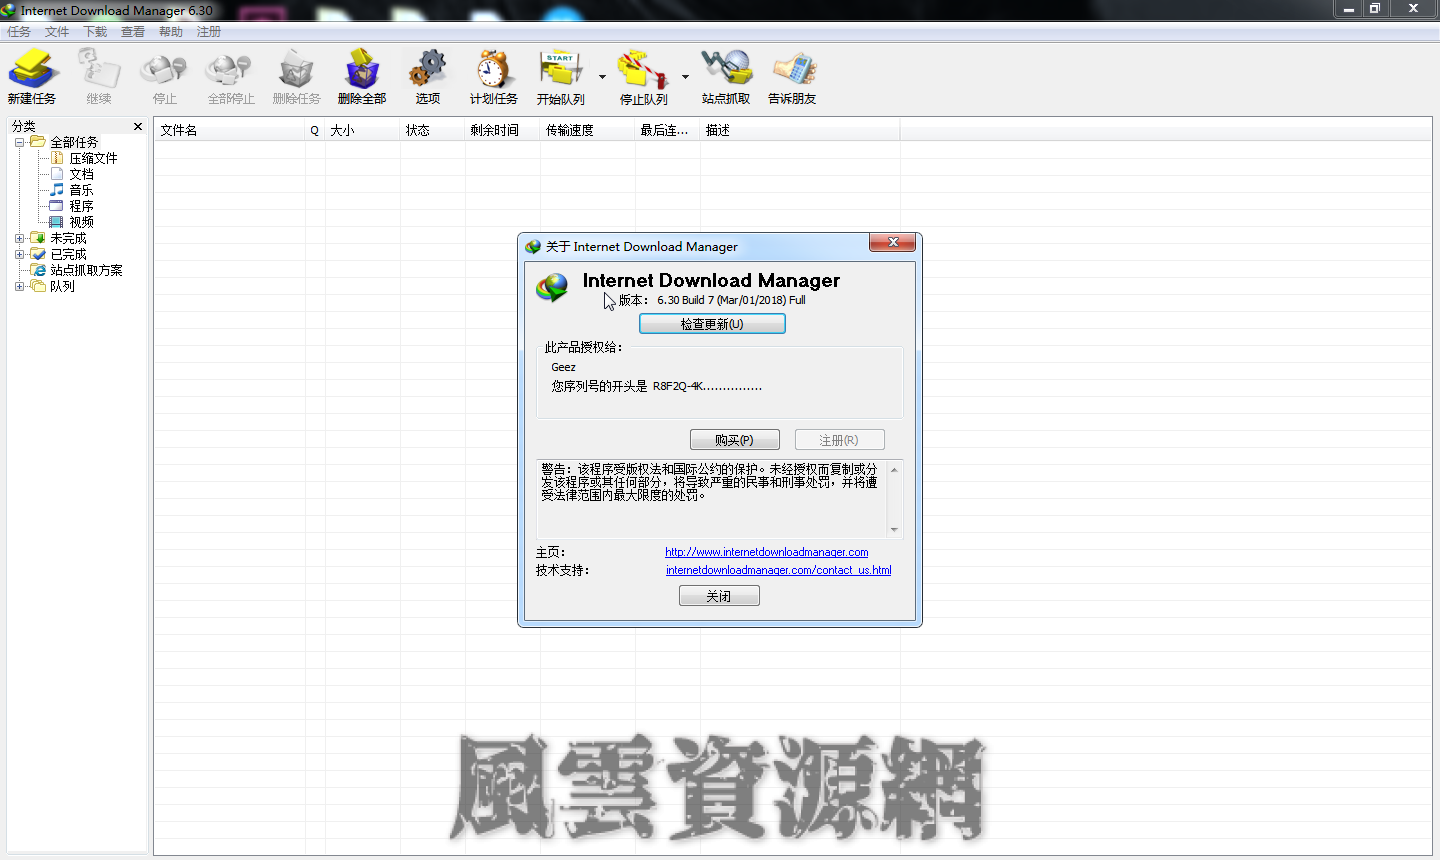 Internet Download Manager6.30便携版